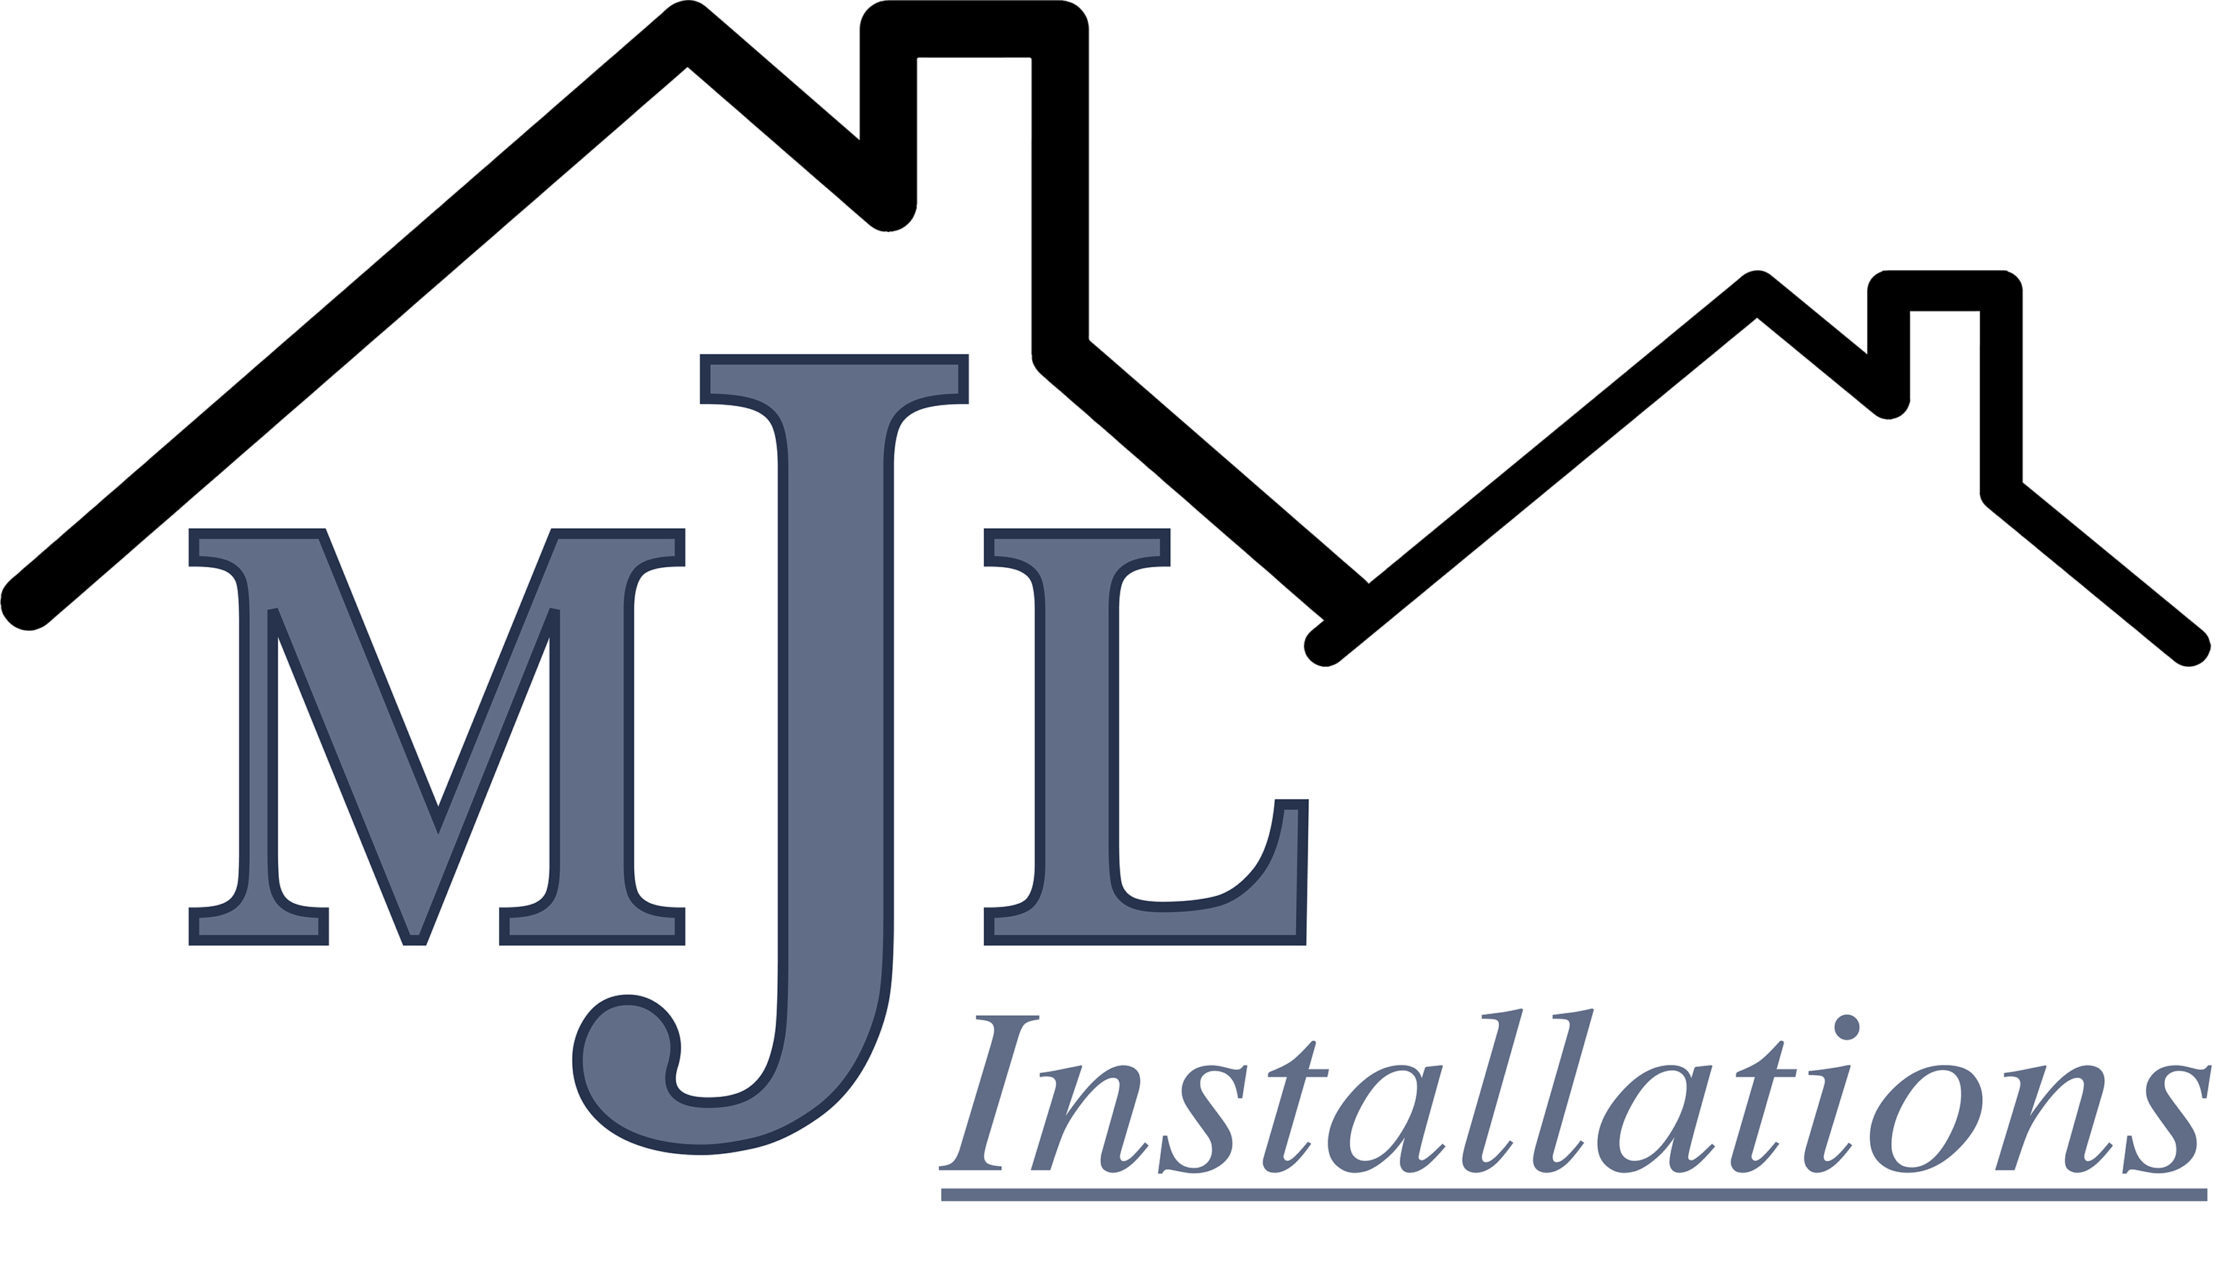 mjl-installations